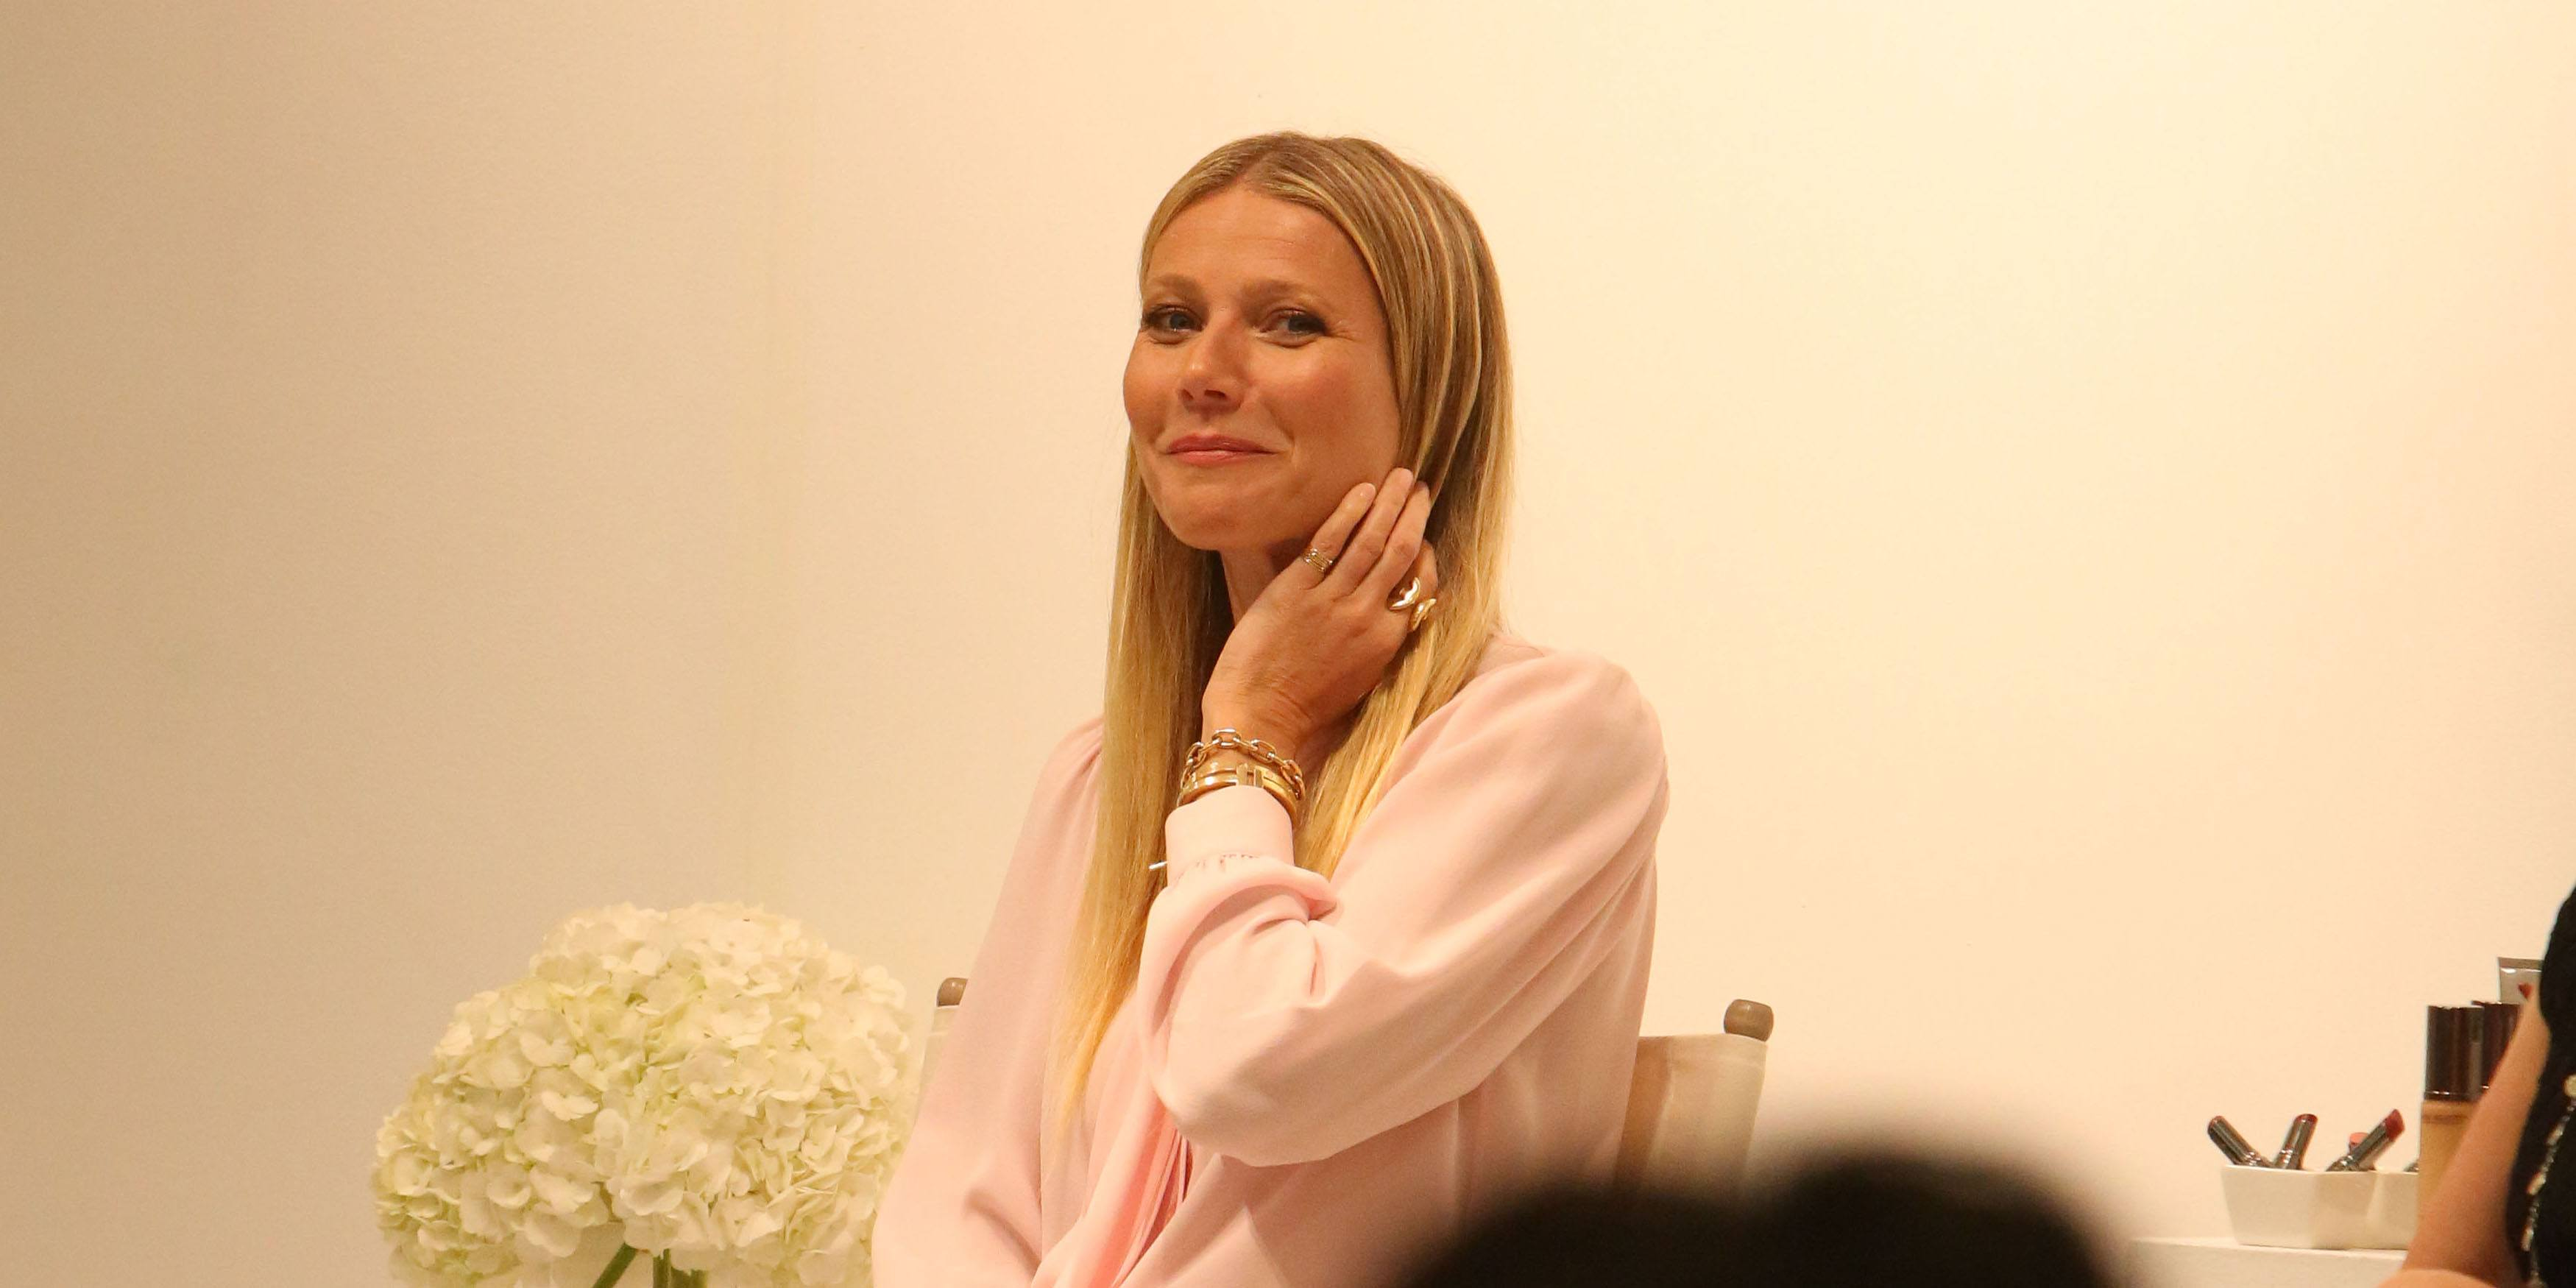 Spotted: Gwyneth Paltrow promotes Juice Beauty in Toronto (PHOTOS)